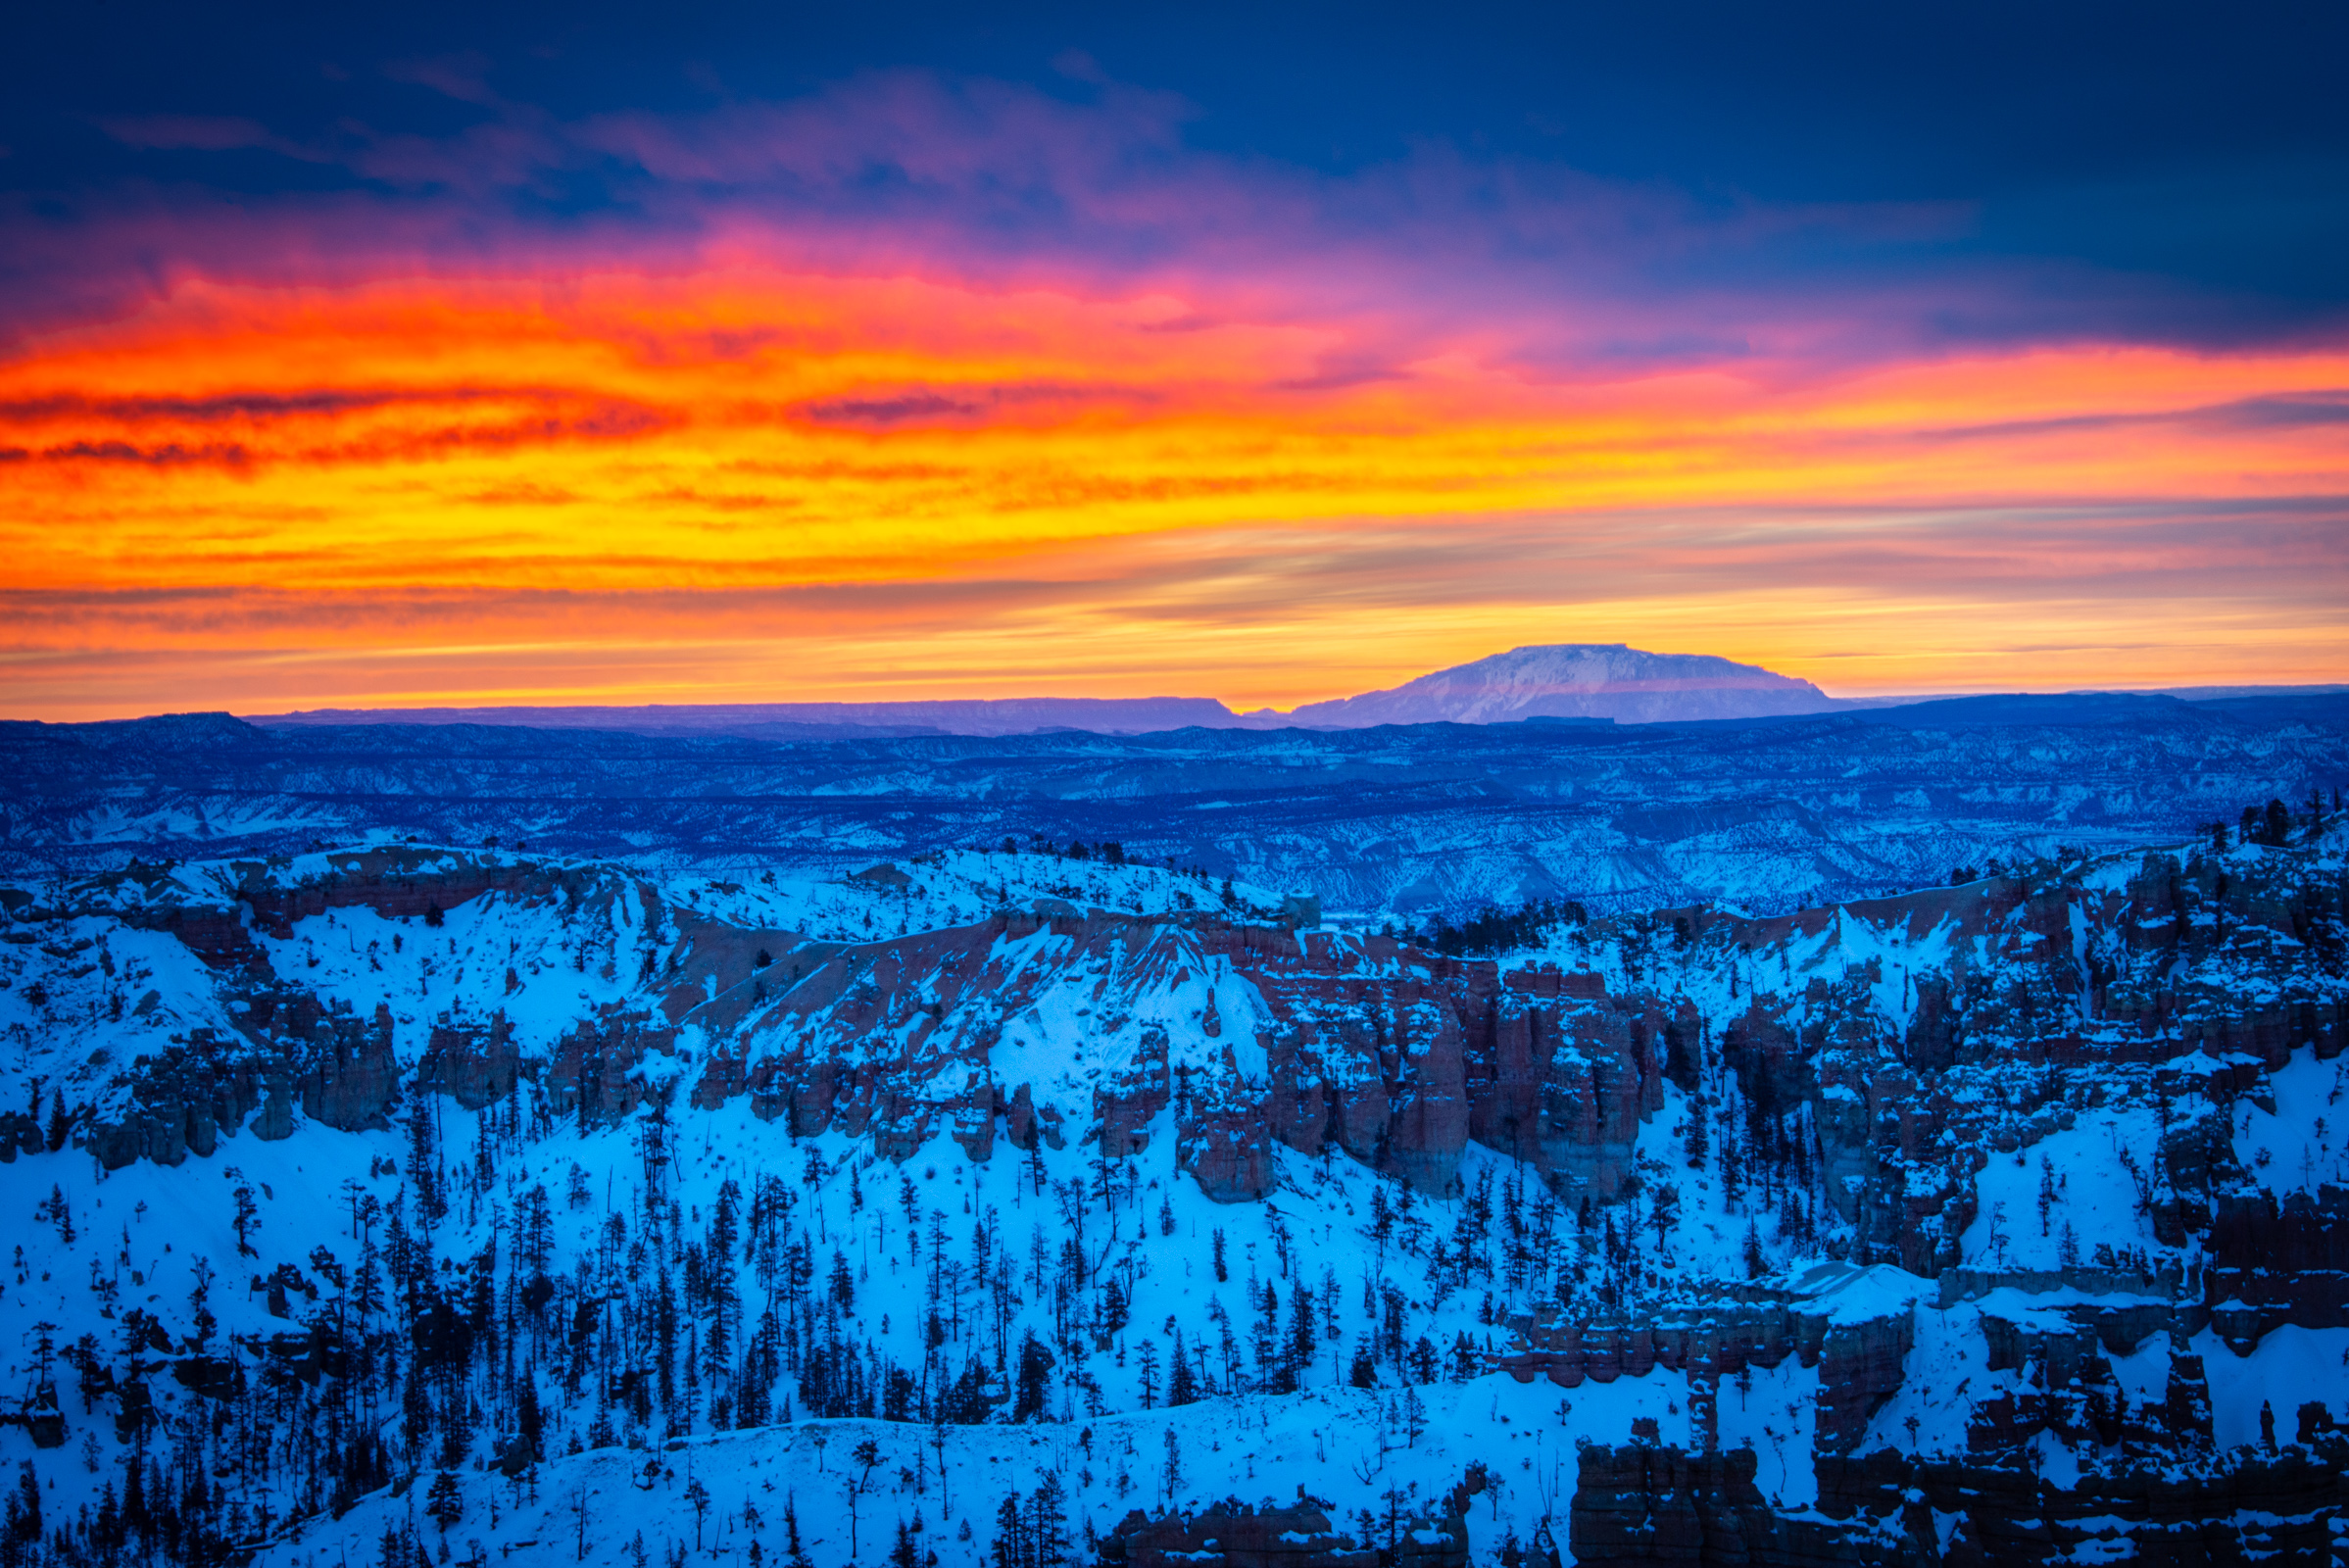 sunrise over bryce canyon, utah, photographed by jamie bannon photography.